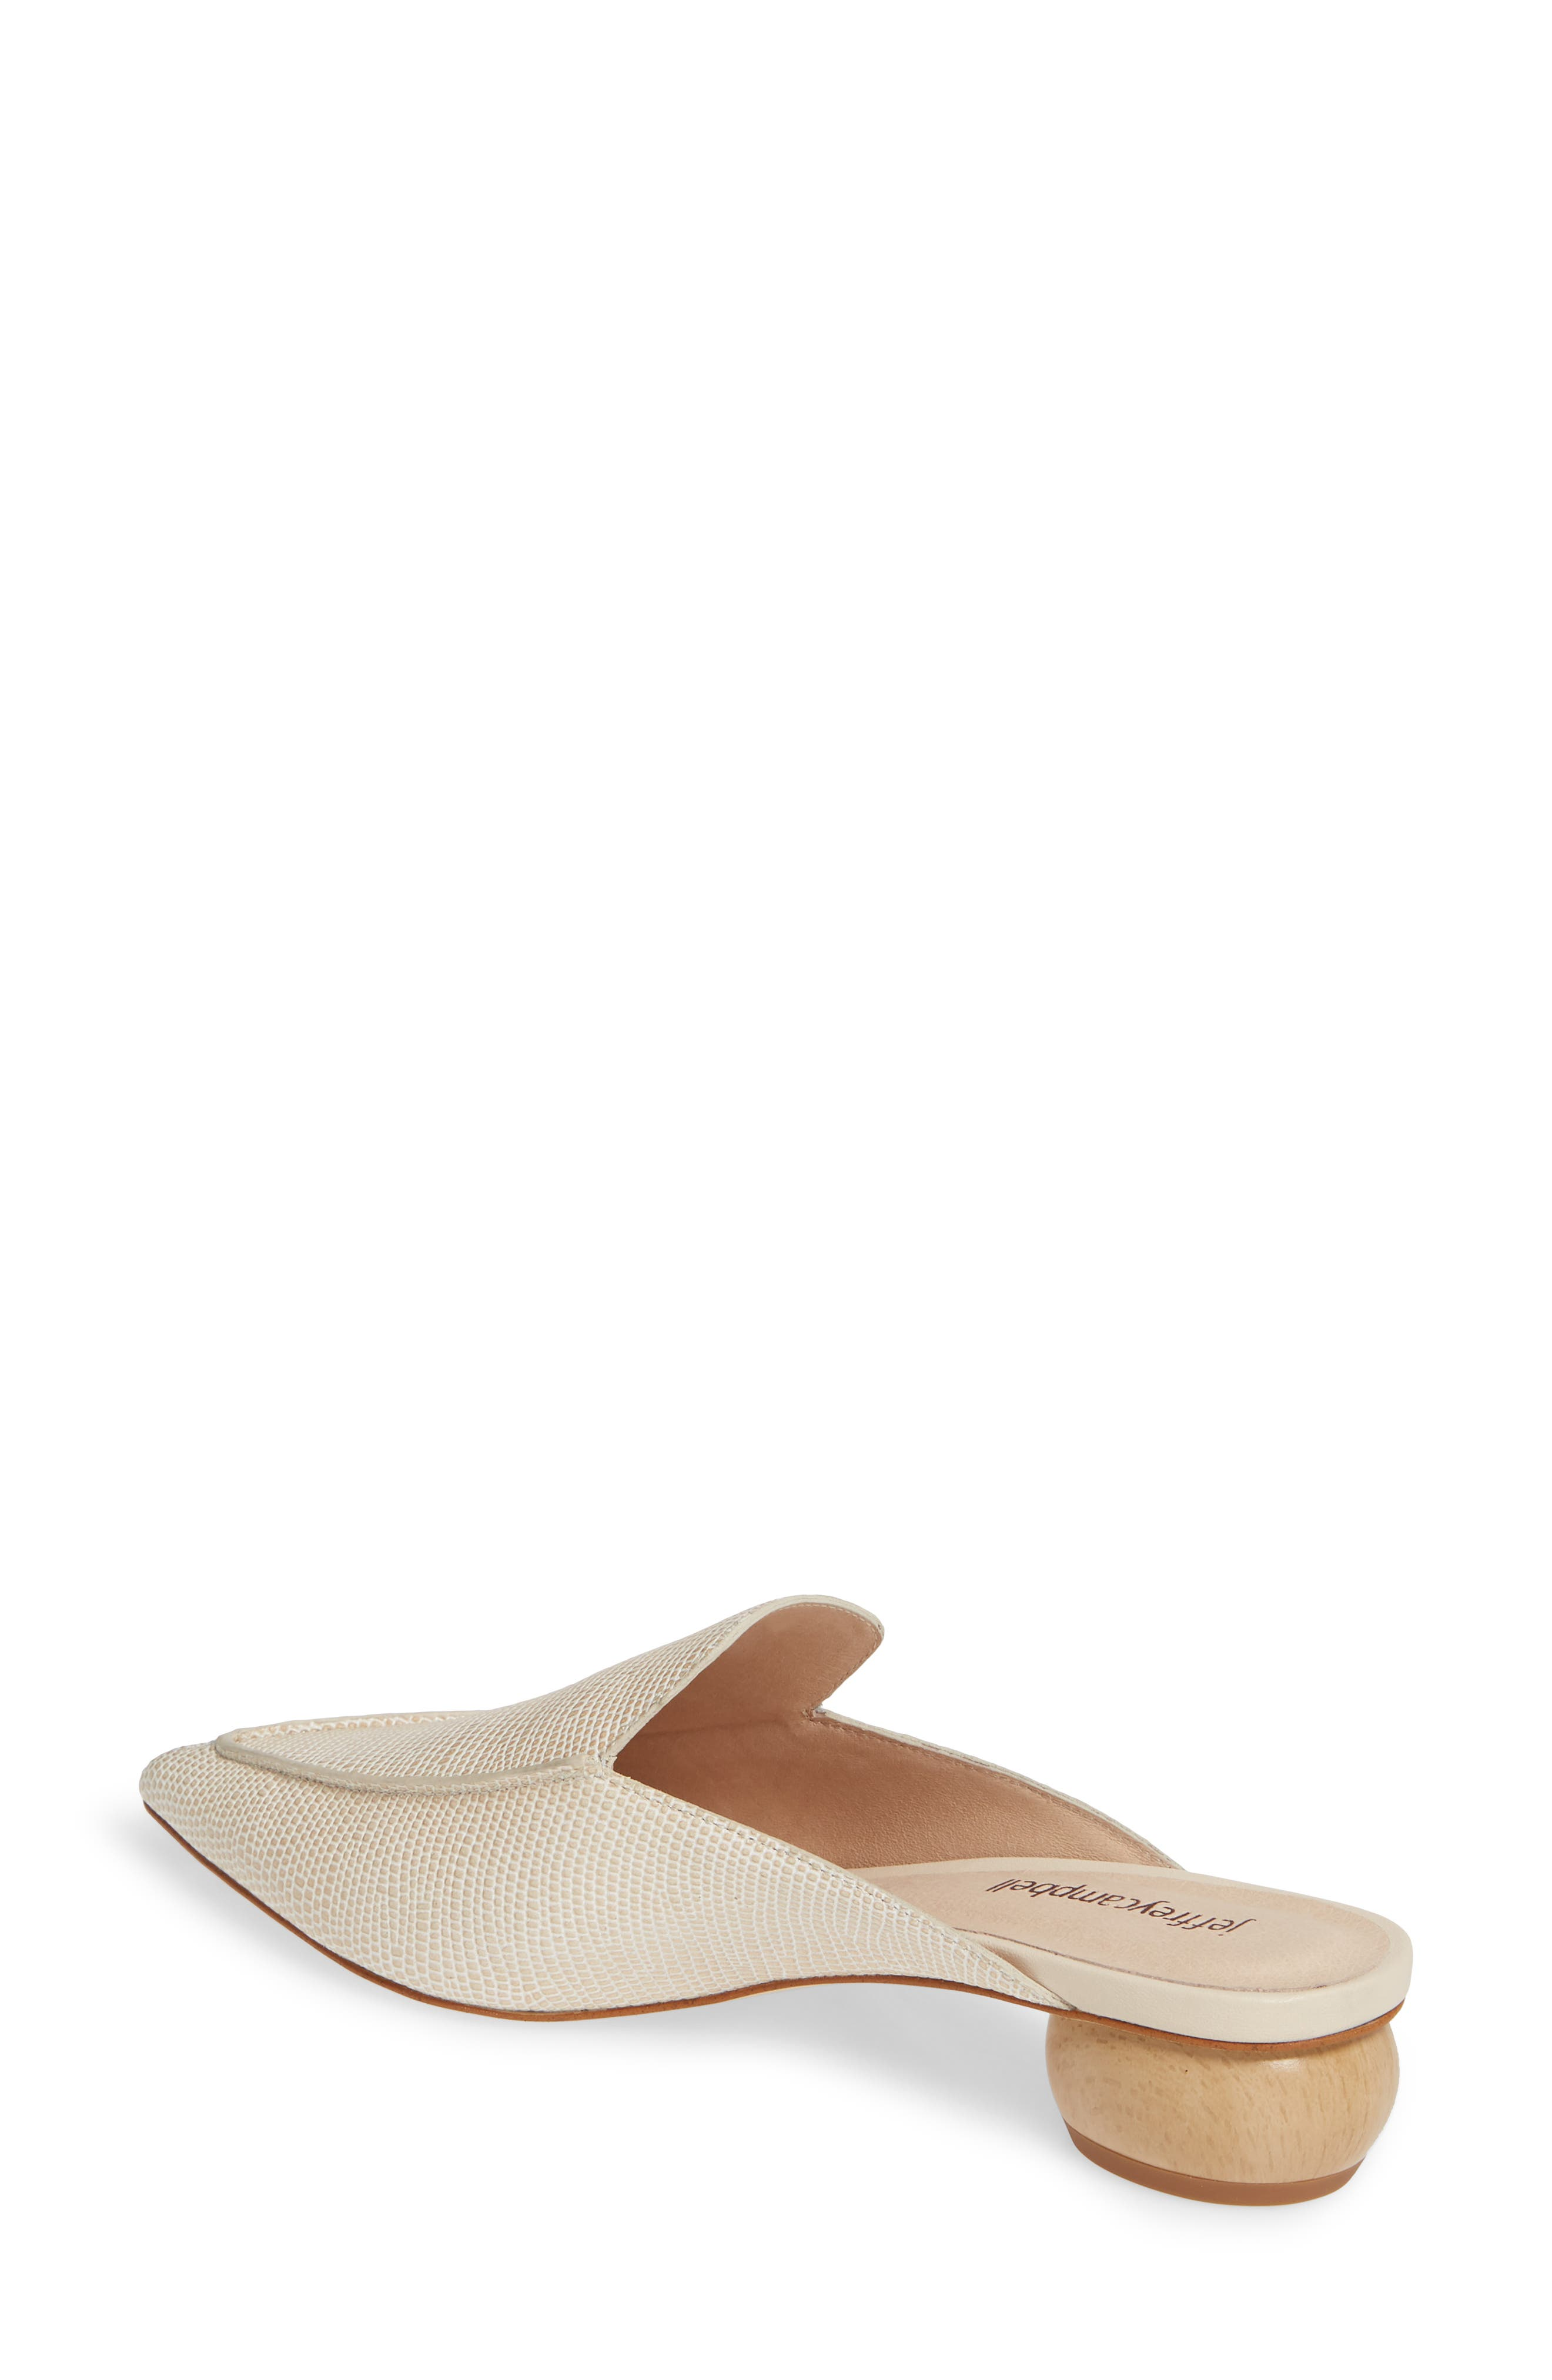 JEFFREY CAMPBELL, Vionit Lizard Embossed Loafer Mule, Alternate thumbnail 2, color, BEIGE LIZARD PRINT